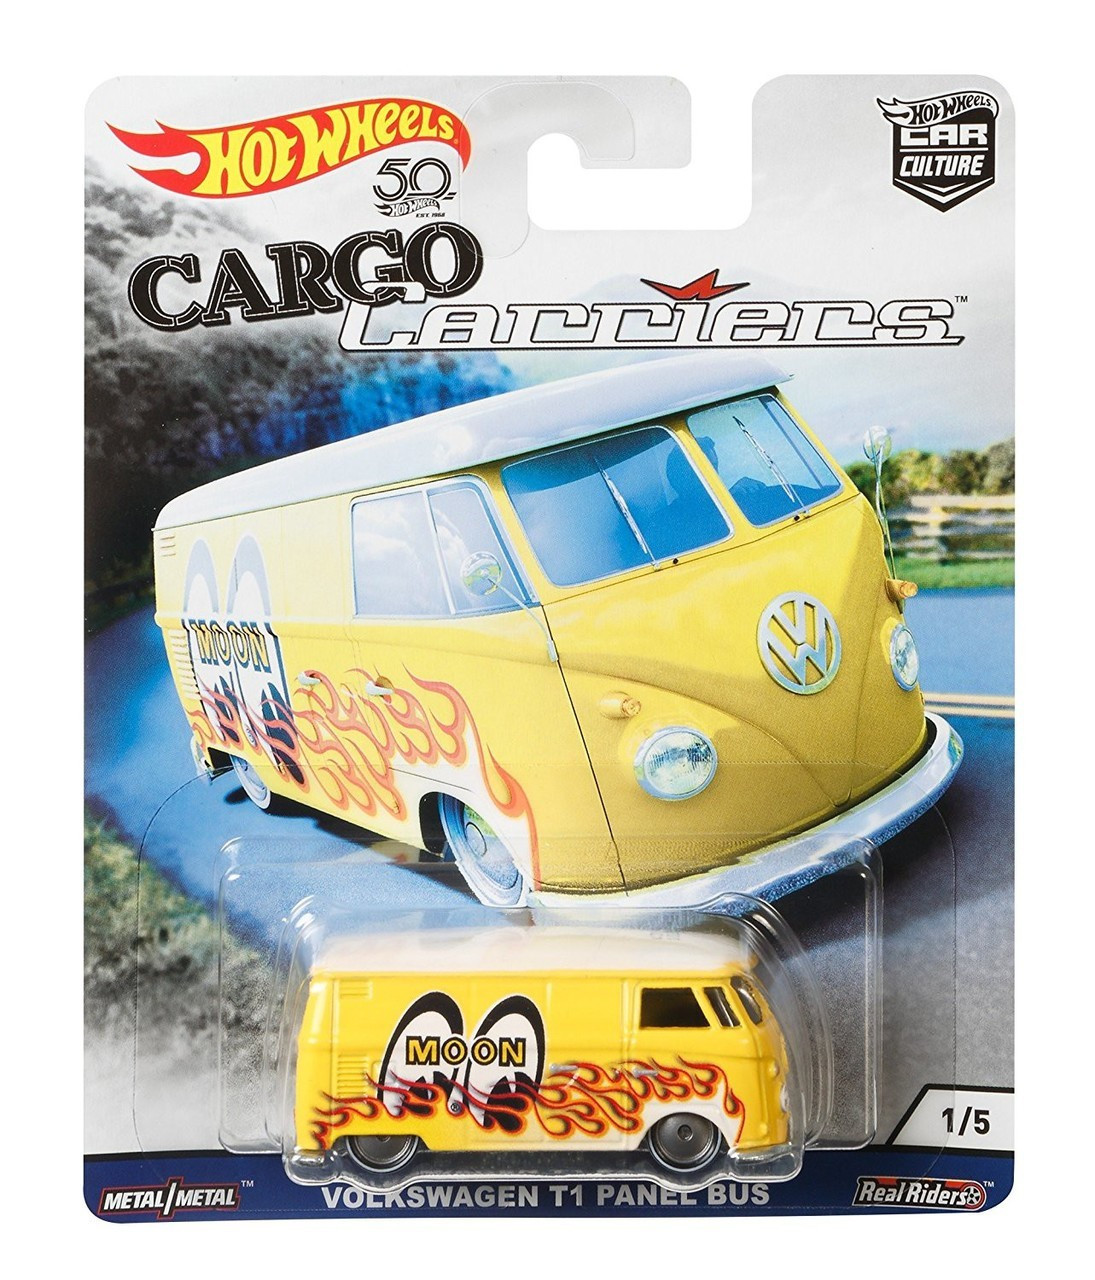 Hot Wheels - Volkswagen T1 Panel Bus Moon Eyes - Cargo Carriers - Car Culture